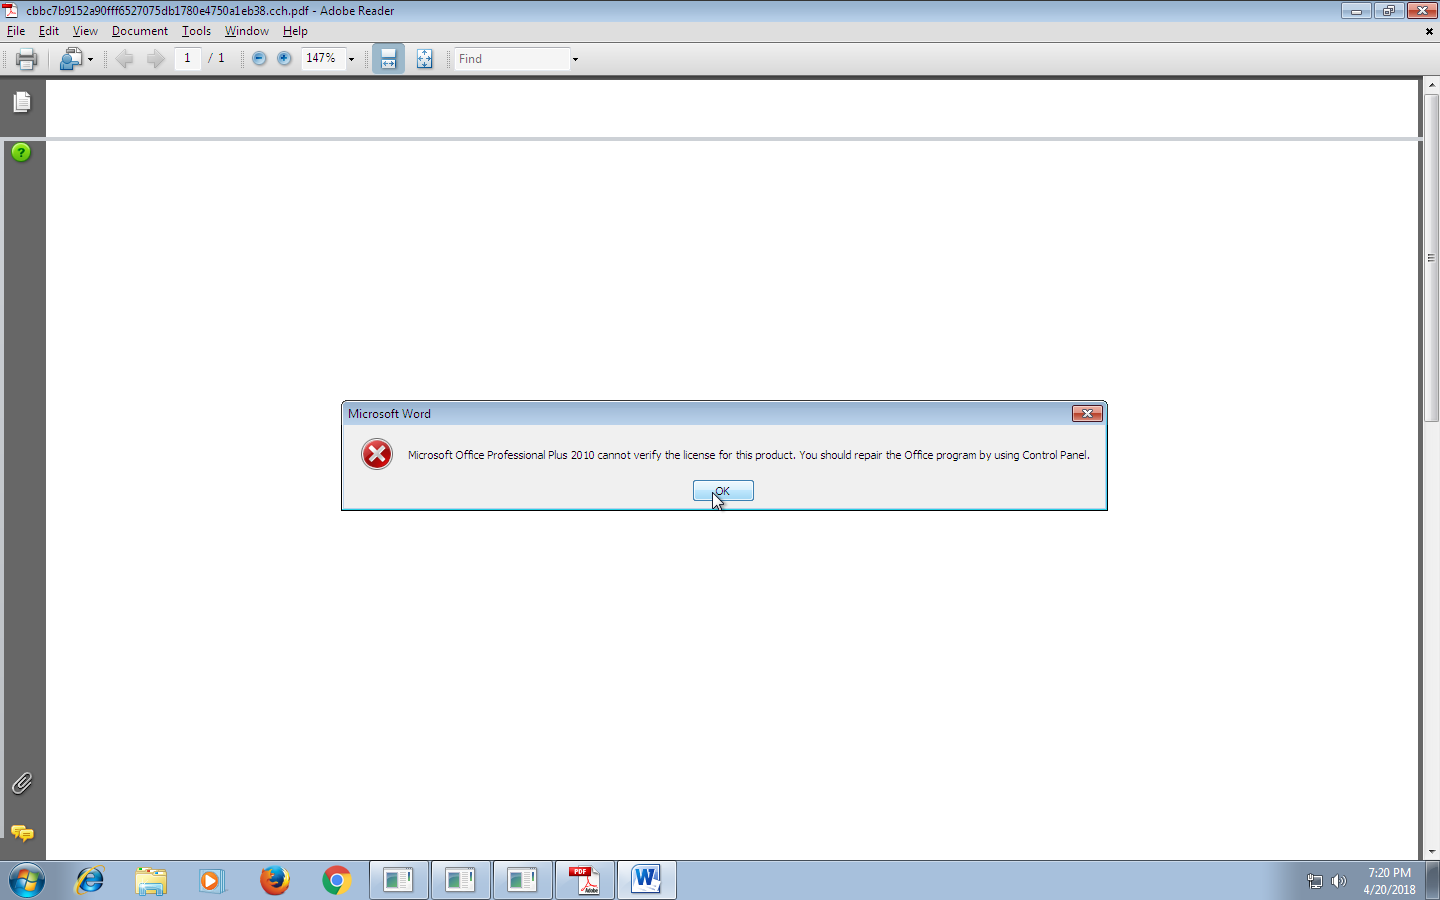 microsoft office professional plus 2010 cannot verify the license for this product